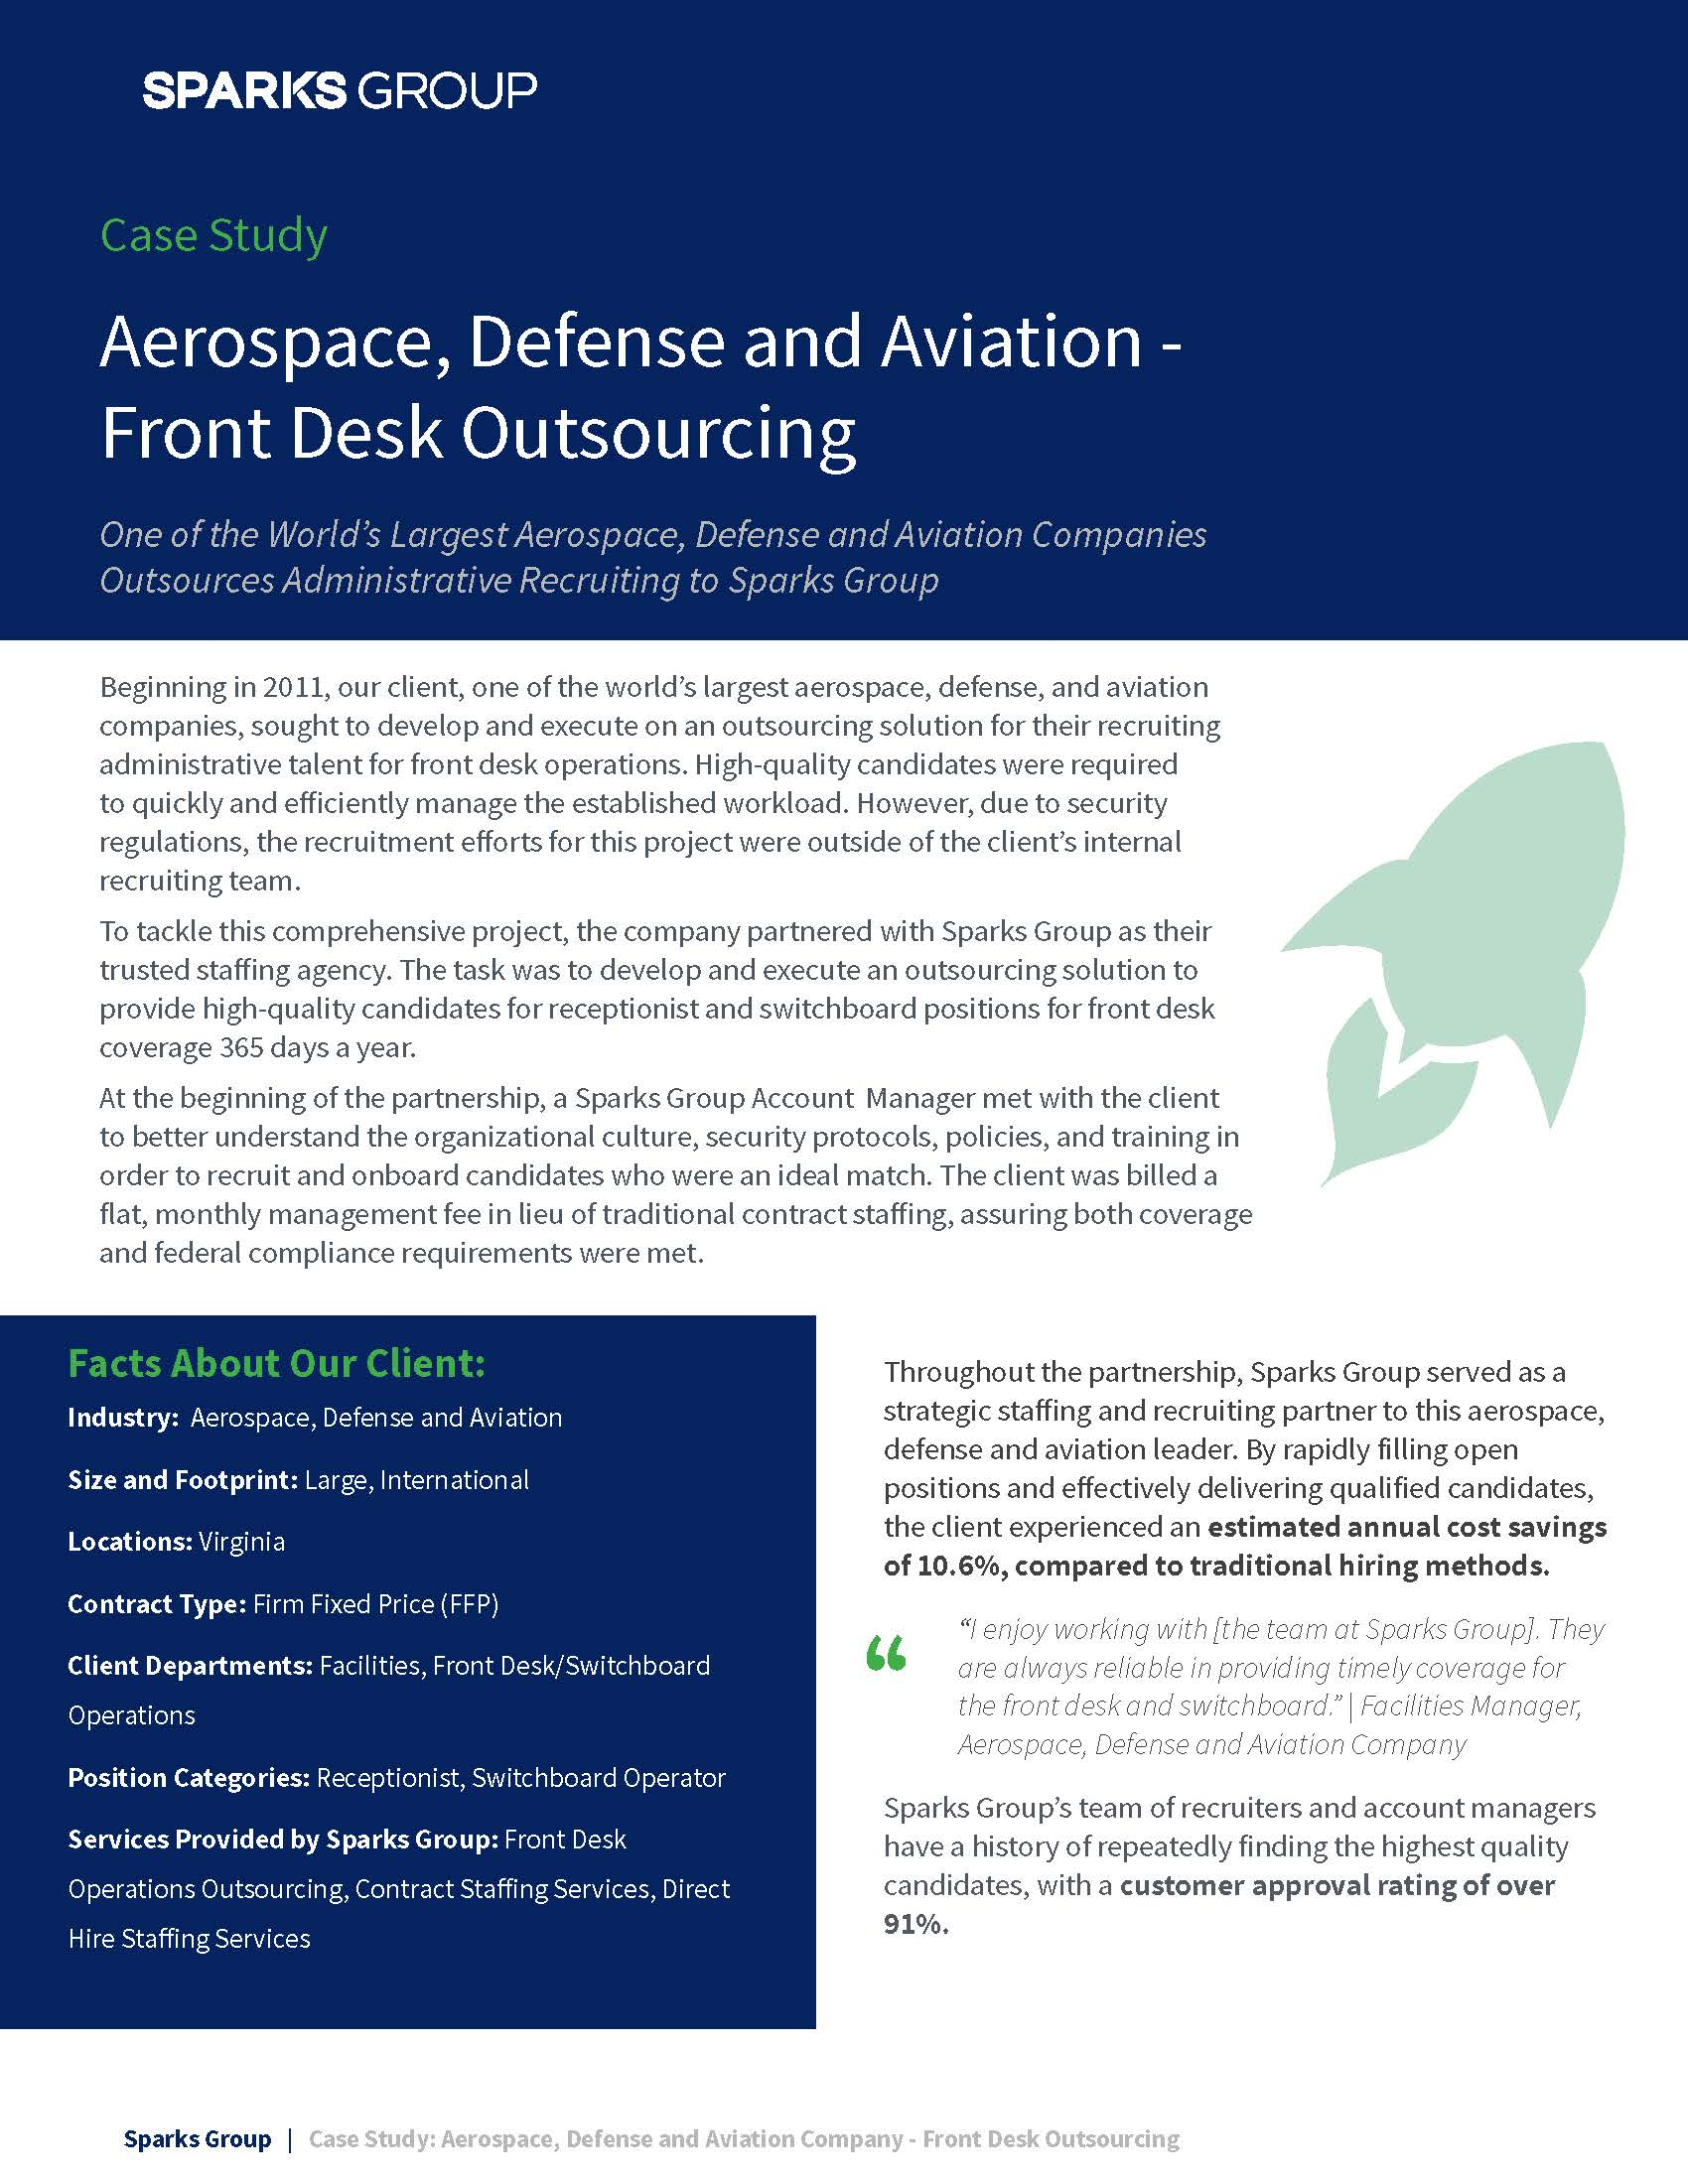 Aerospace, Defense and Aviation Company – Front Desk Outsourcing Case Study